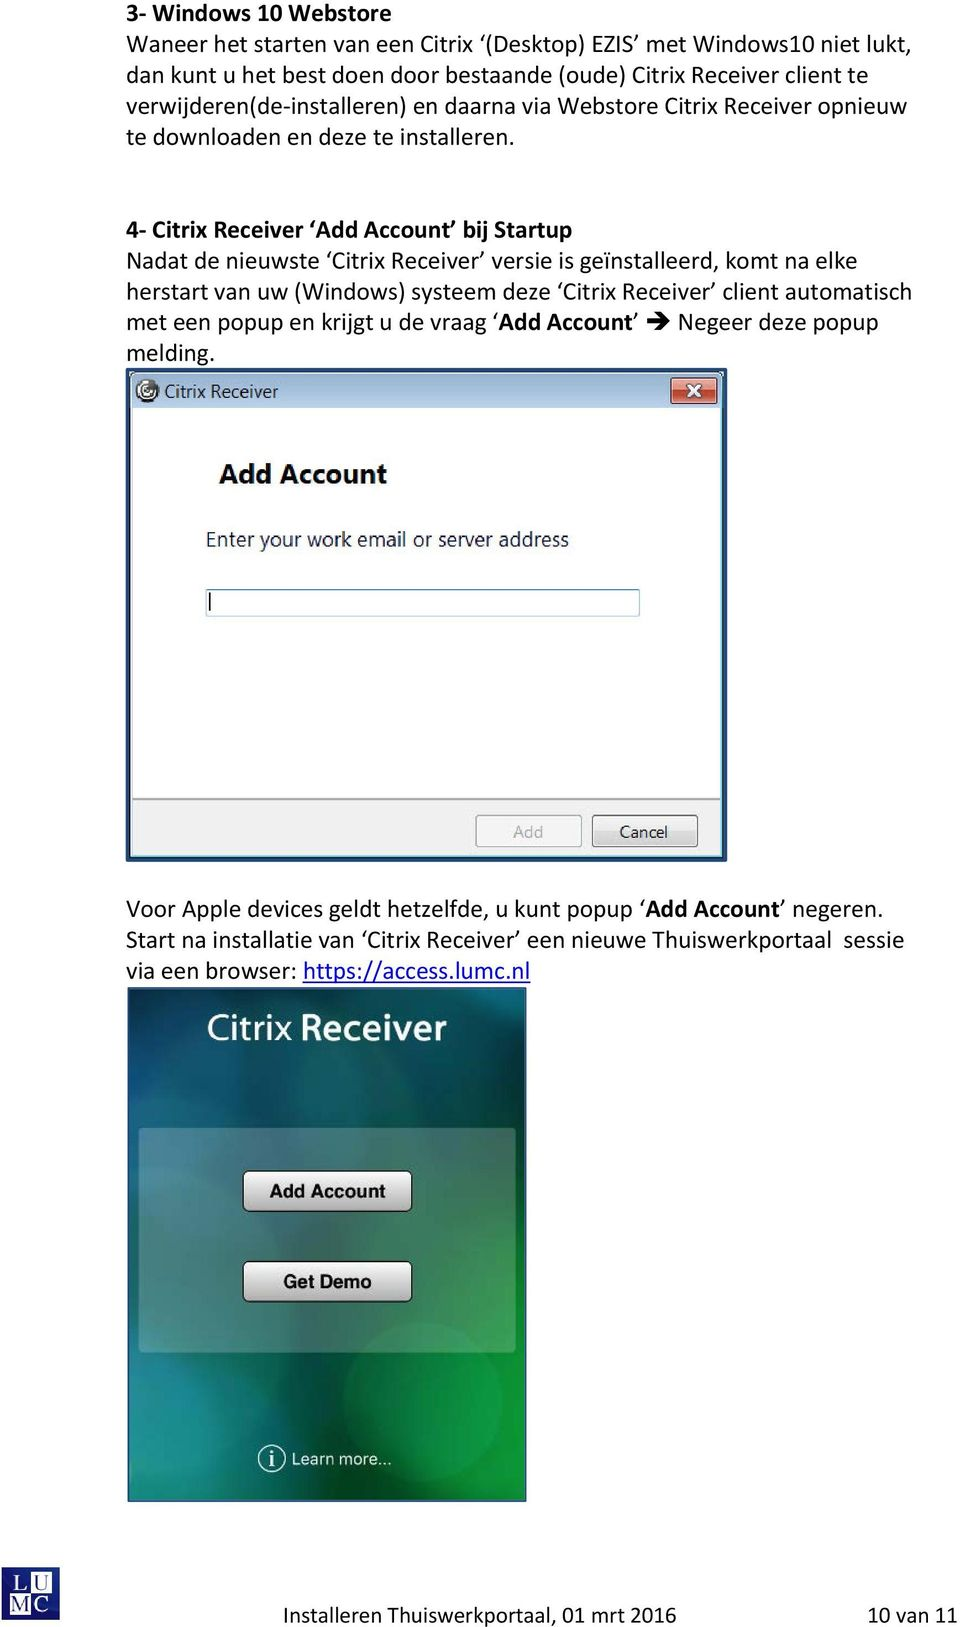 4- Citrix Receiver Add Account bij Startup Nadat de nieuwste Citrix Receiver versie is geïnstalleerd, komt na elke herstart van uw (Windows) systeem deze Citrix Receiver client automatisch met